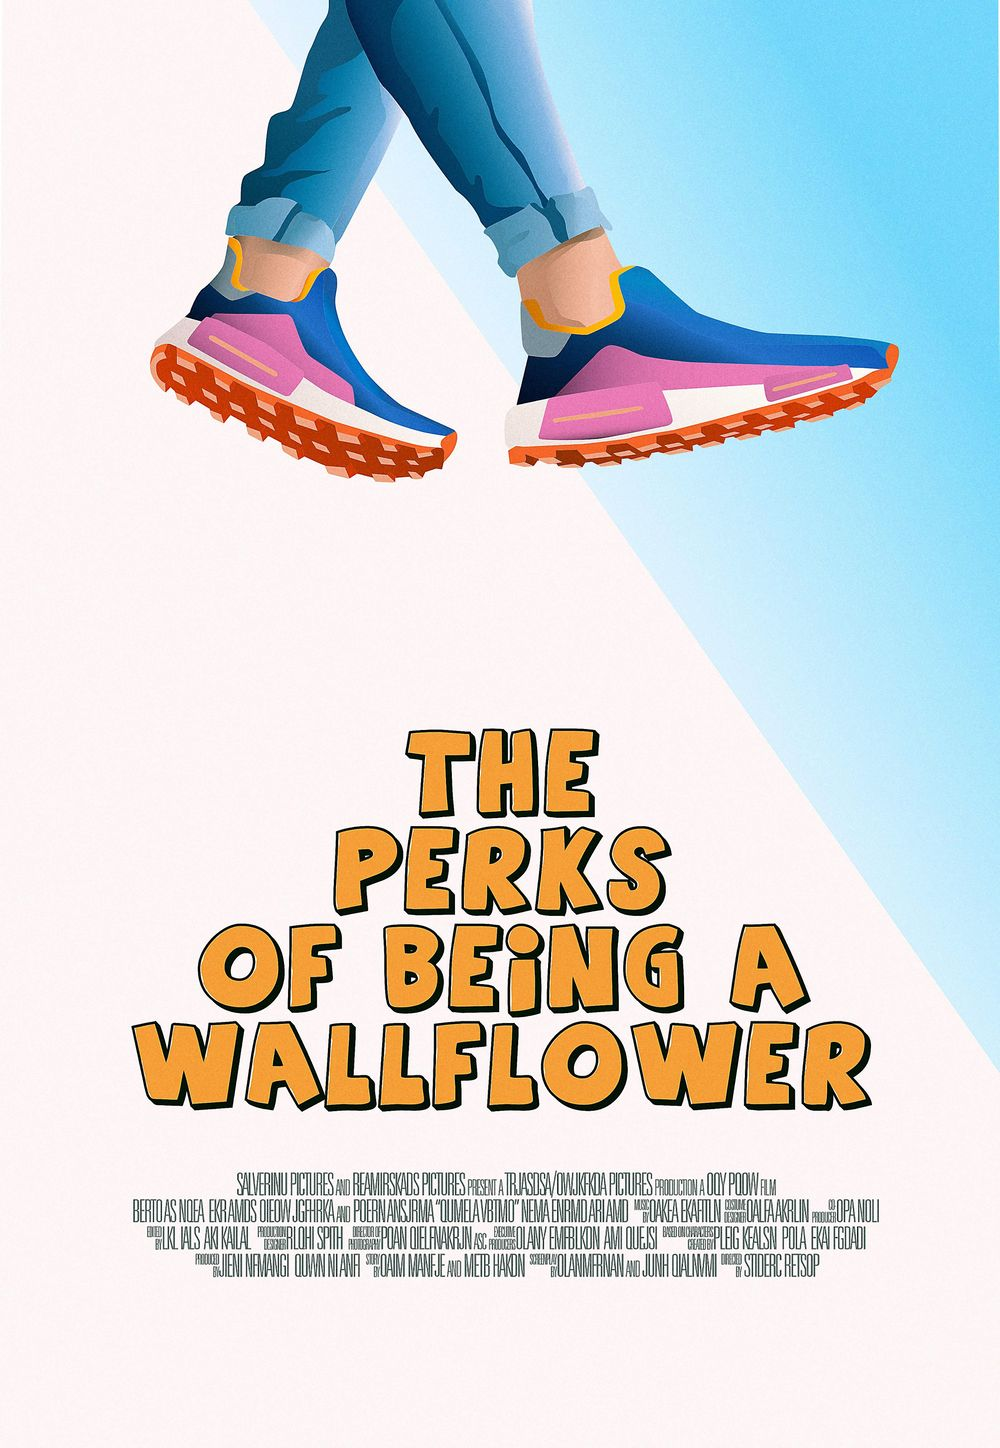 The Perks of Being a Wallflower - image 1 - student project